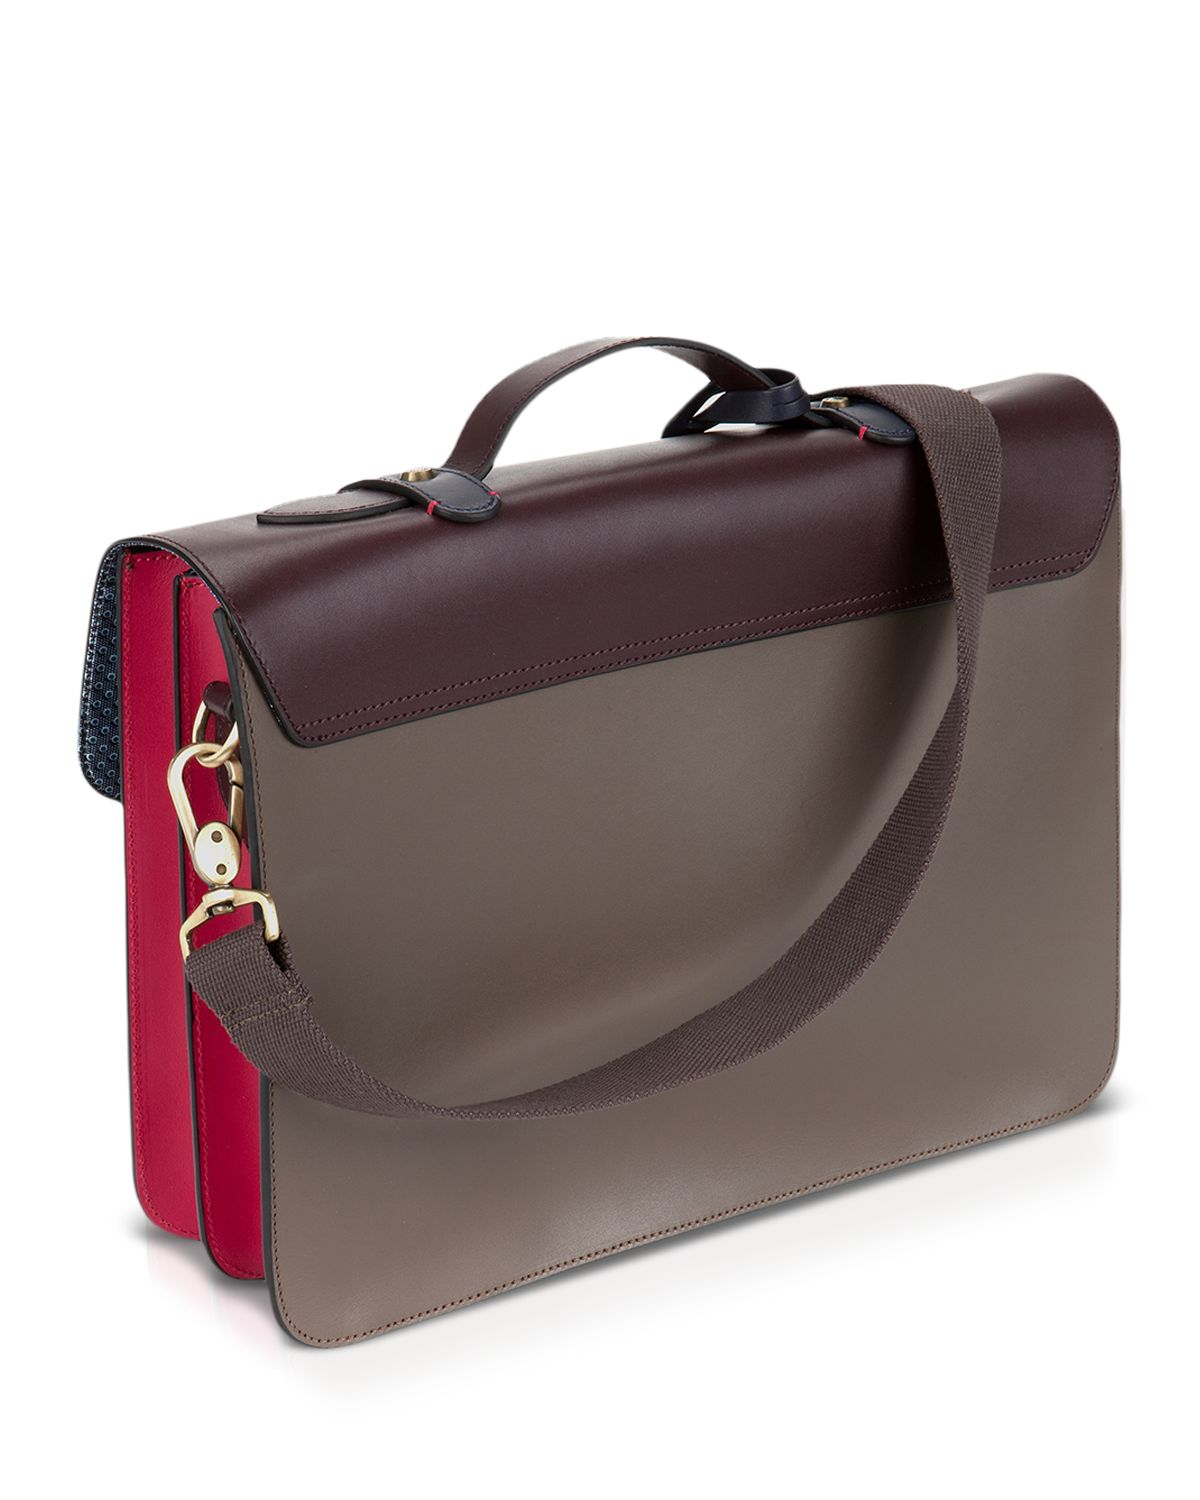 e8aead387 Lyst - Ted Baker Harlemm Colour Block Leather Satchel Bag in Gray ...